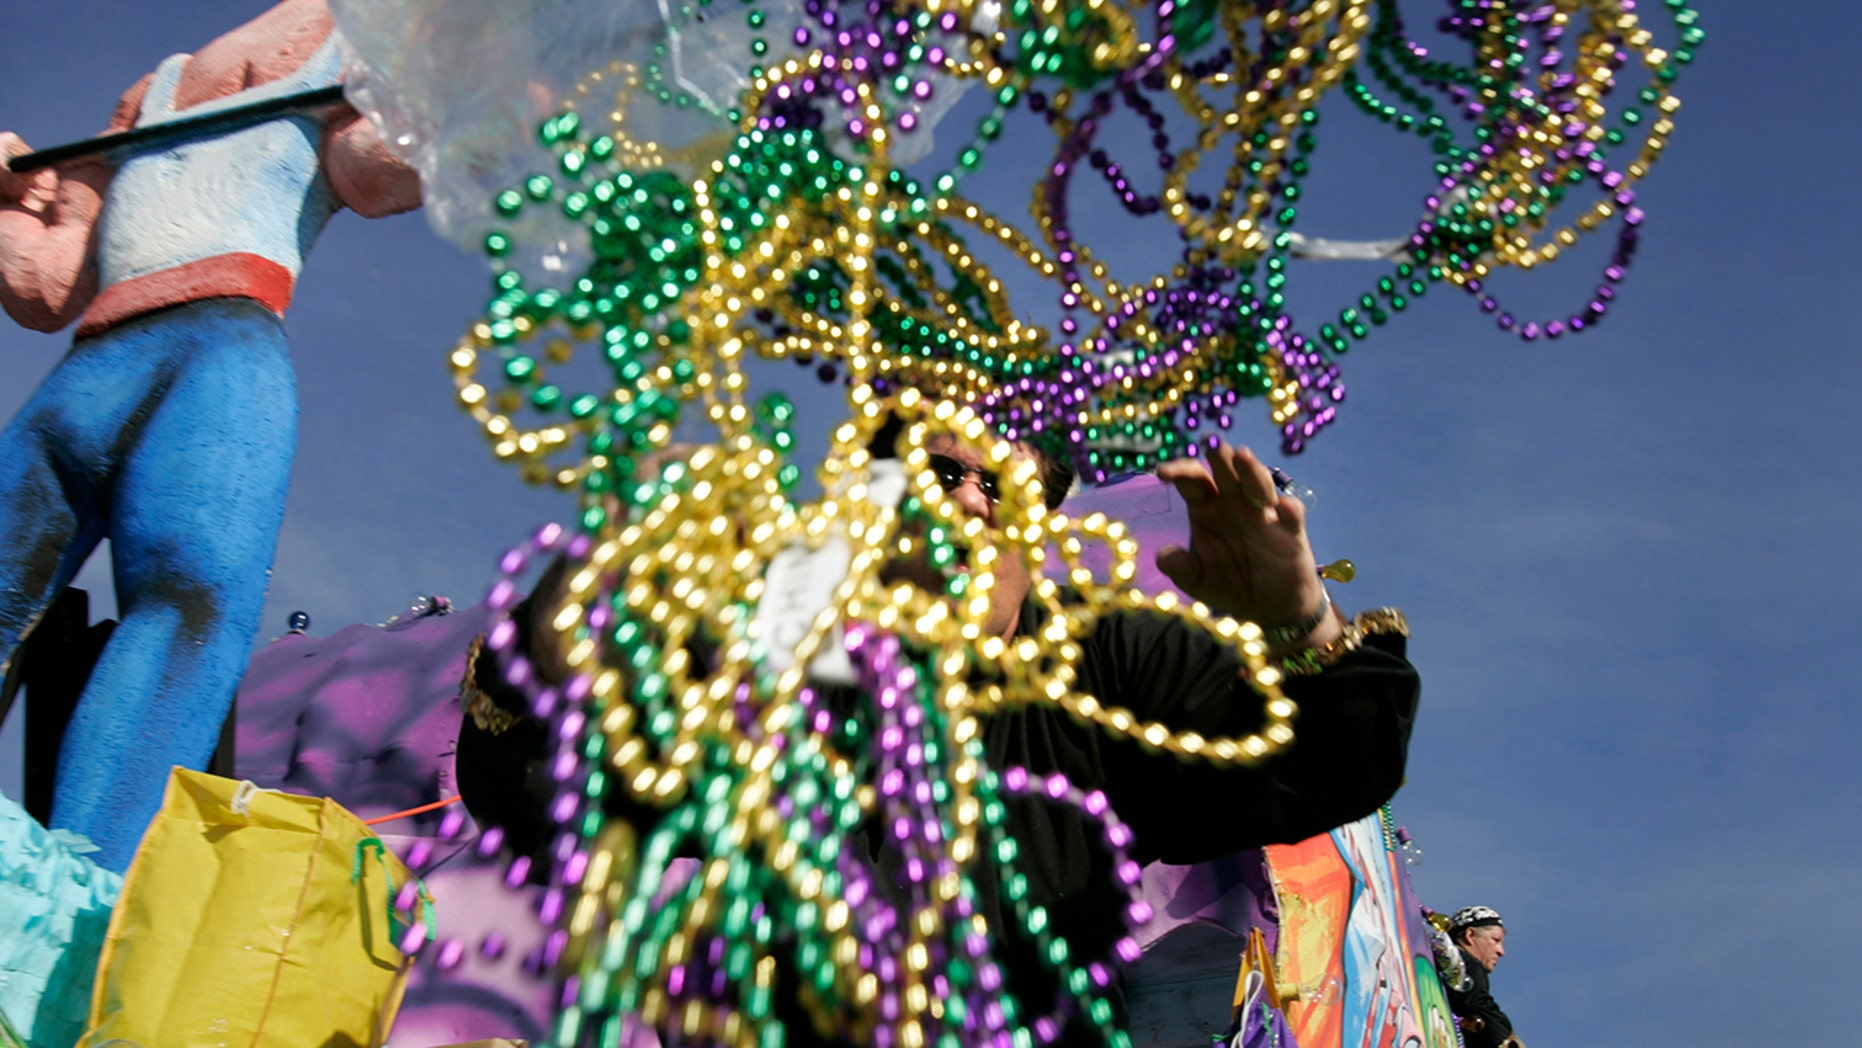 A parade rider throws out handfuls of beads during a Mardi Gras parade.